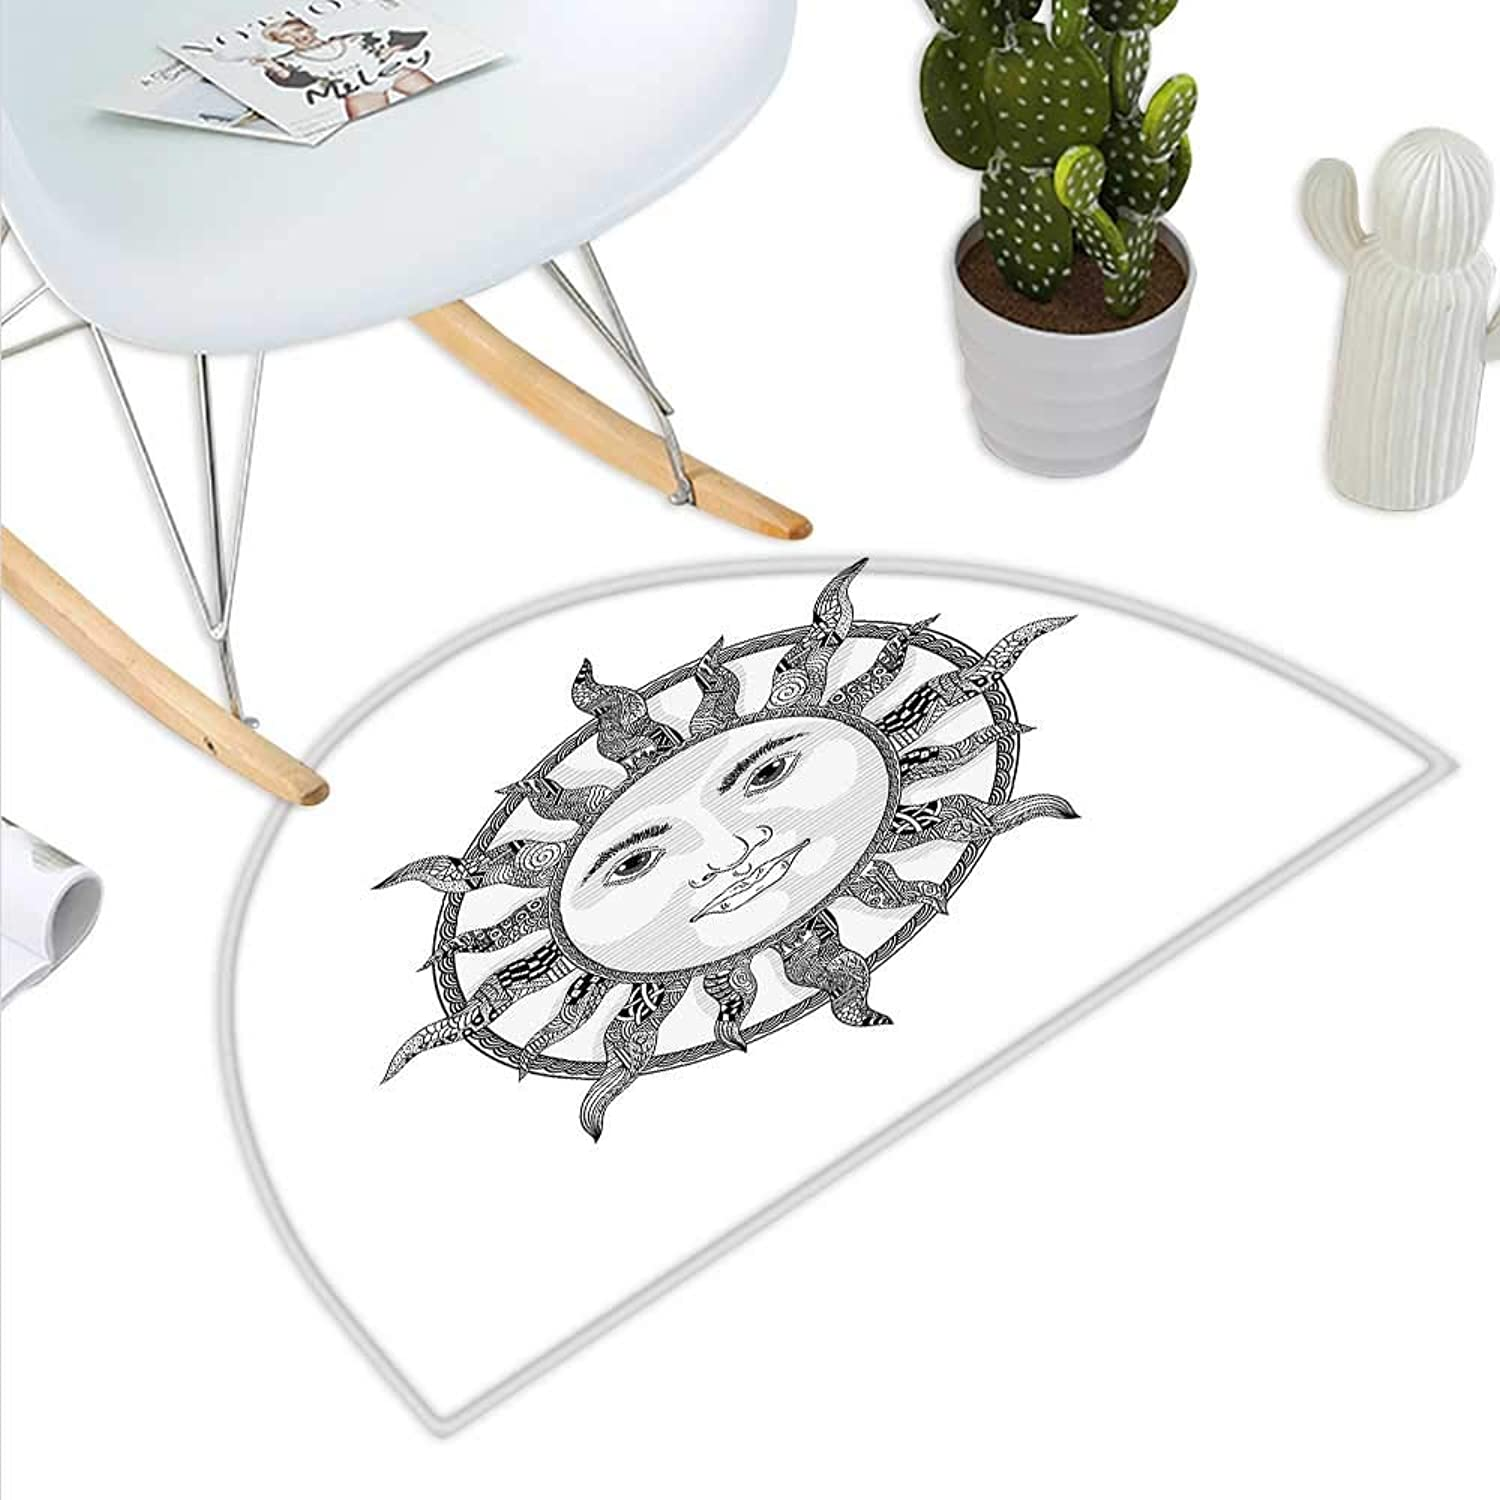 Sun Semicircle Doormat Monochrome Ornamental Zentangle Heavenly Body with Human Face Design Ethnic Pattern Halfmoon doormats H 35.4  xD 53.1  Black White